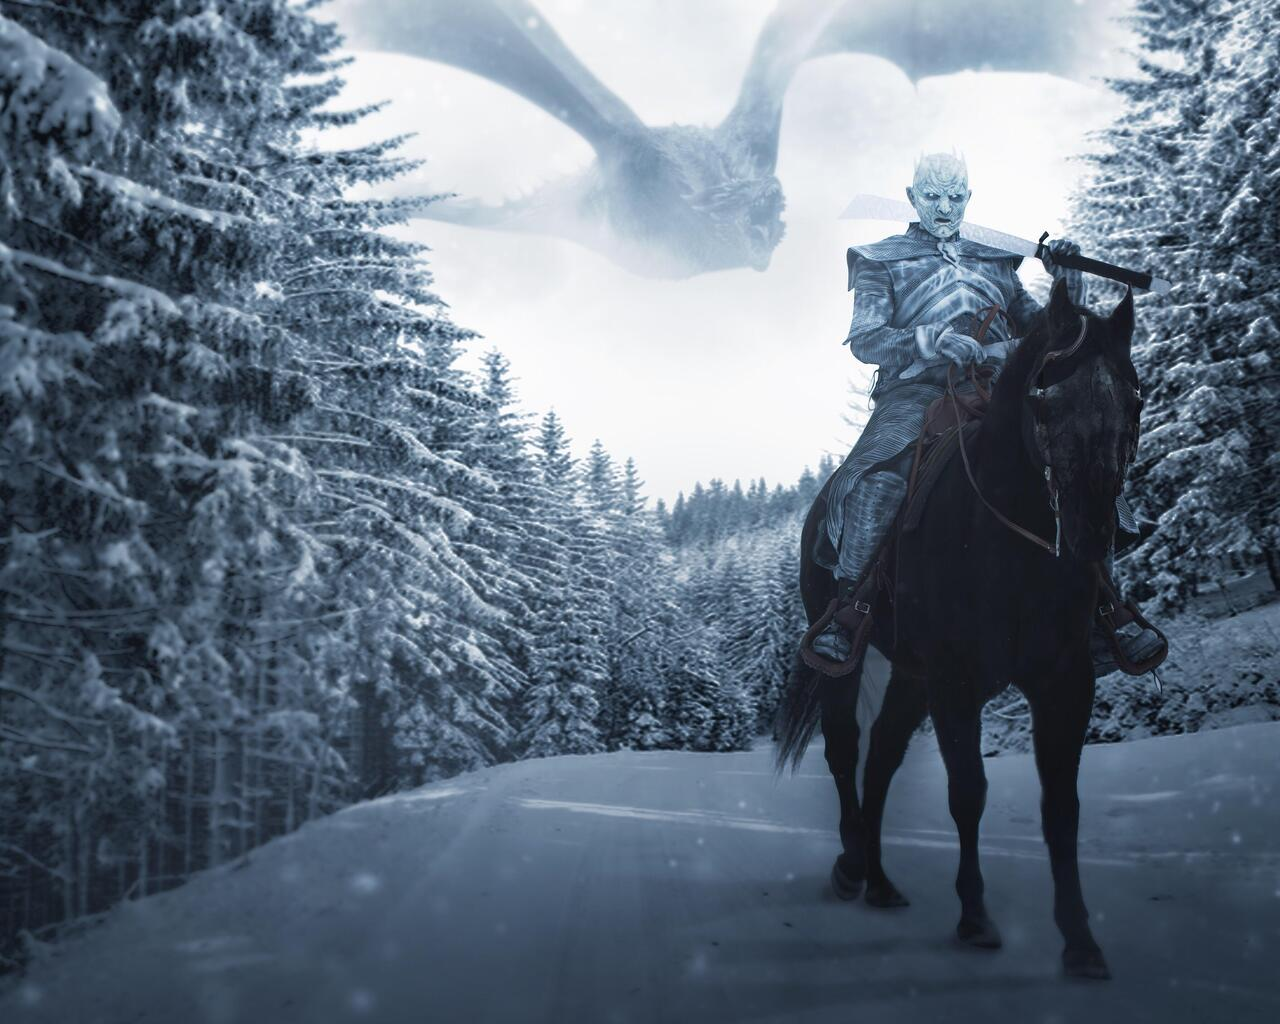 night-king-game-of-thrones-season-8-v7.jpg